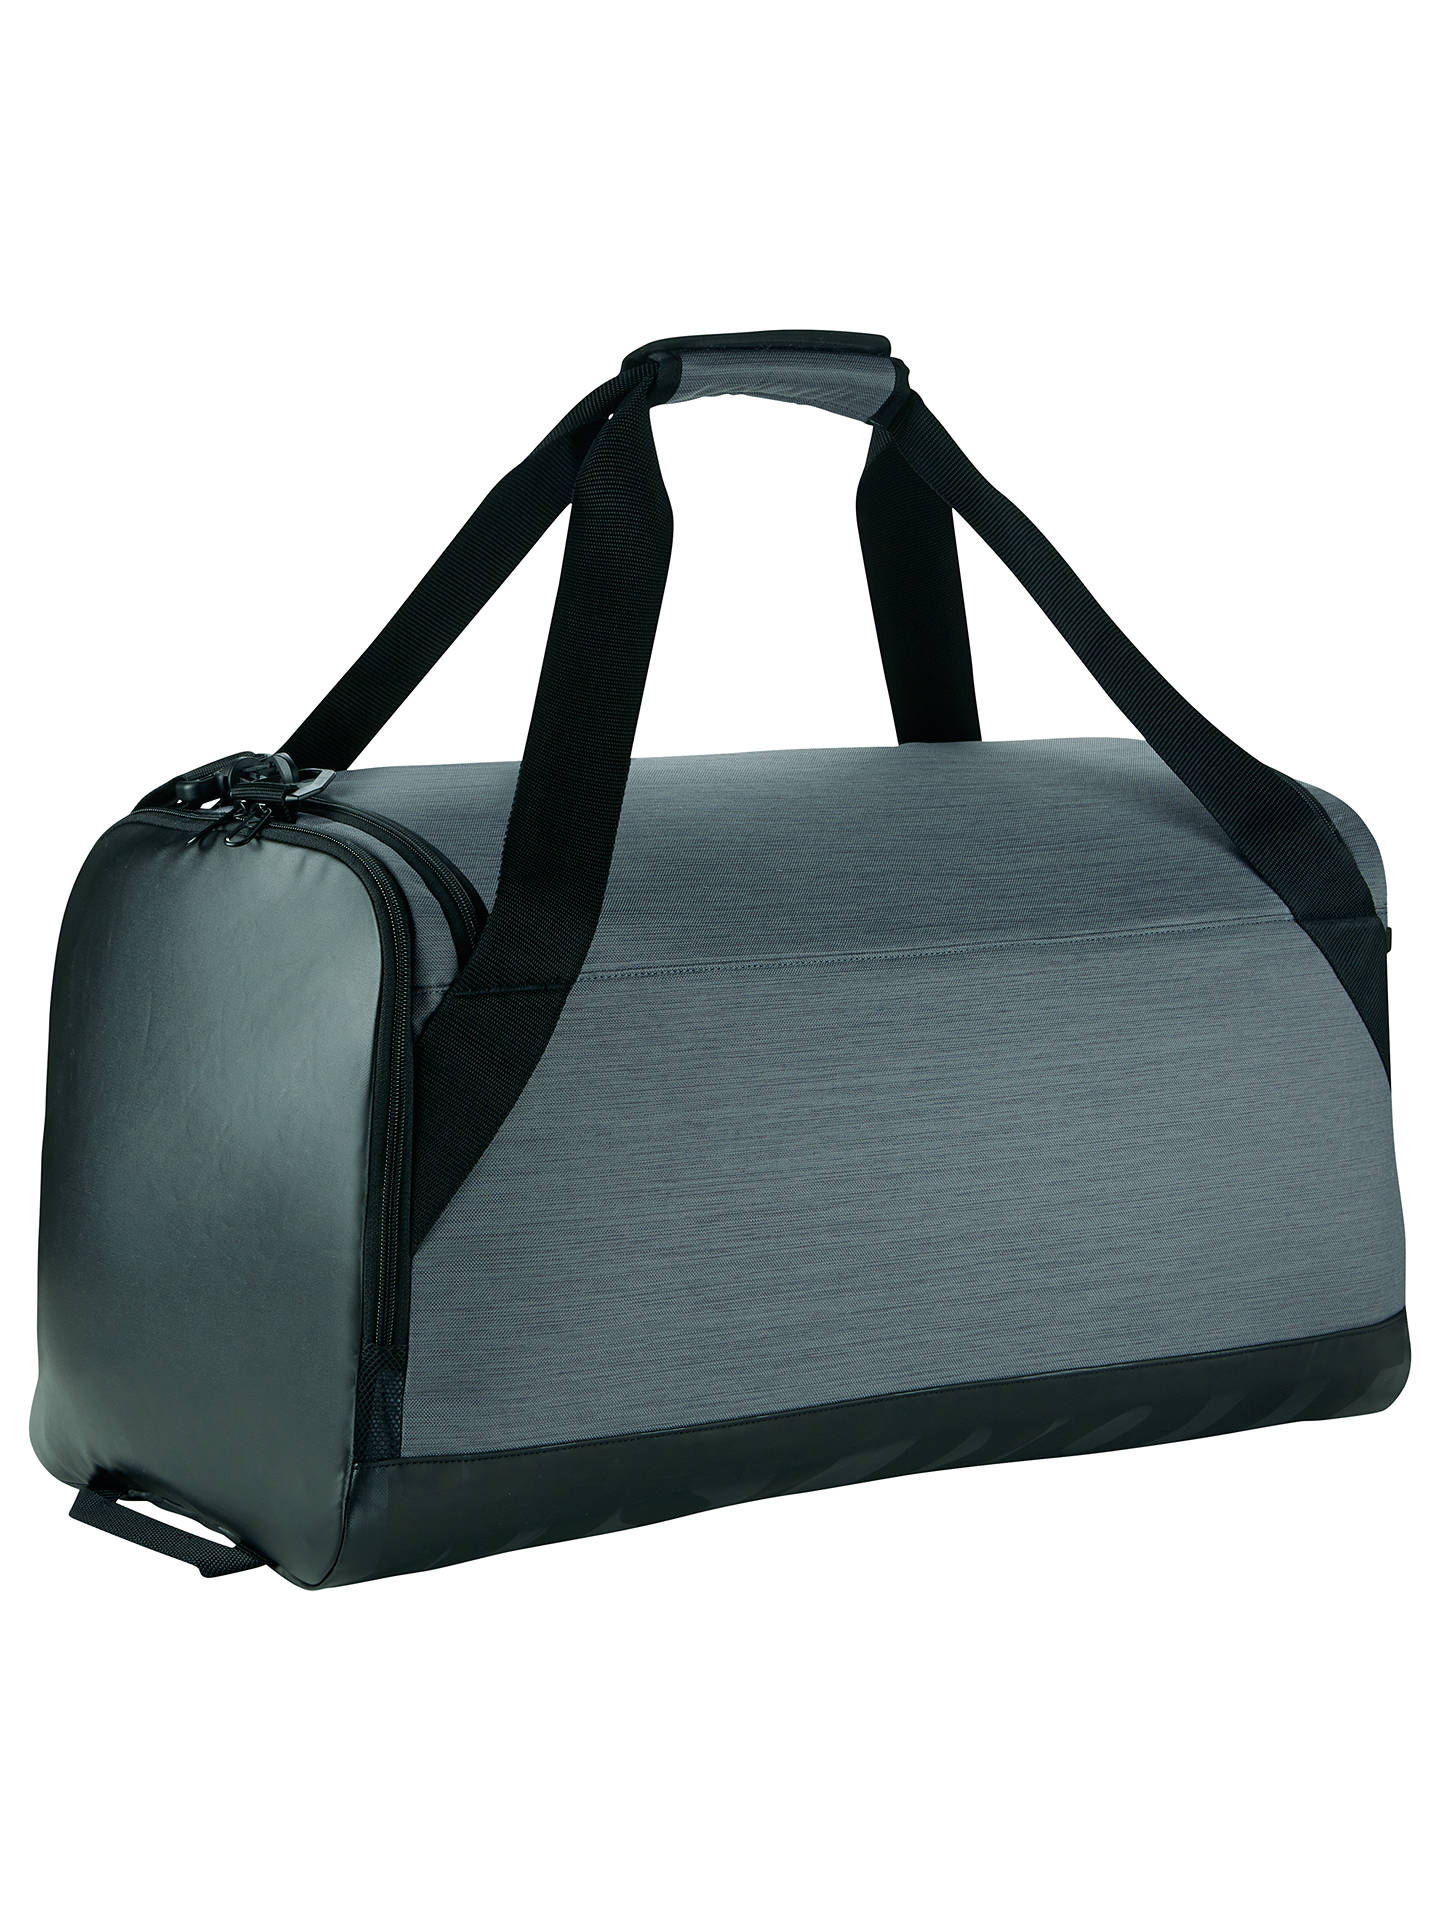 ... BuyNike Brasilia Medium Training Duffle Bag a58cf9afe58dd